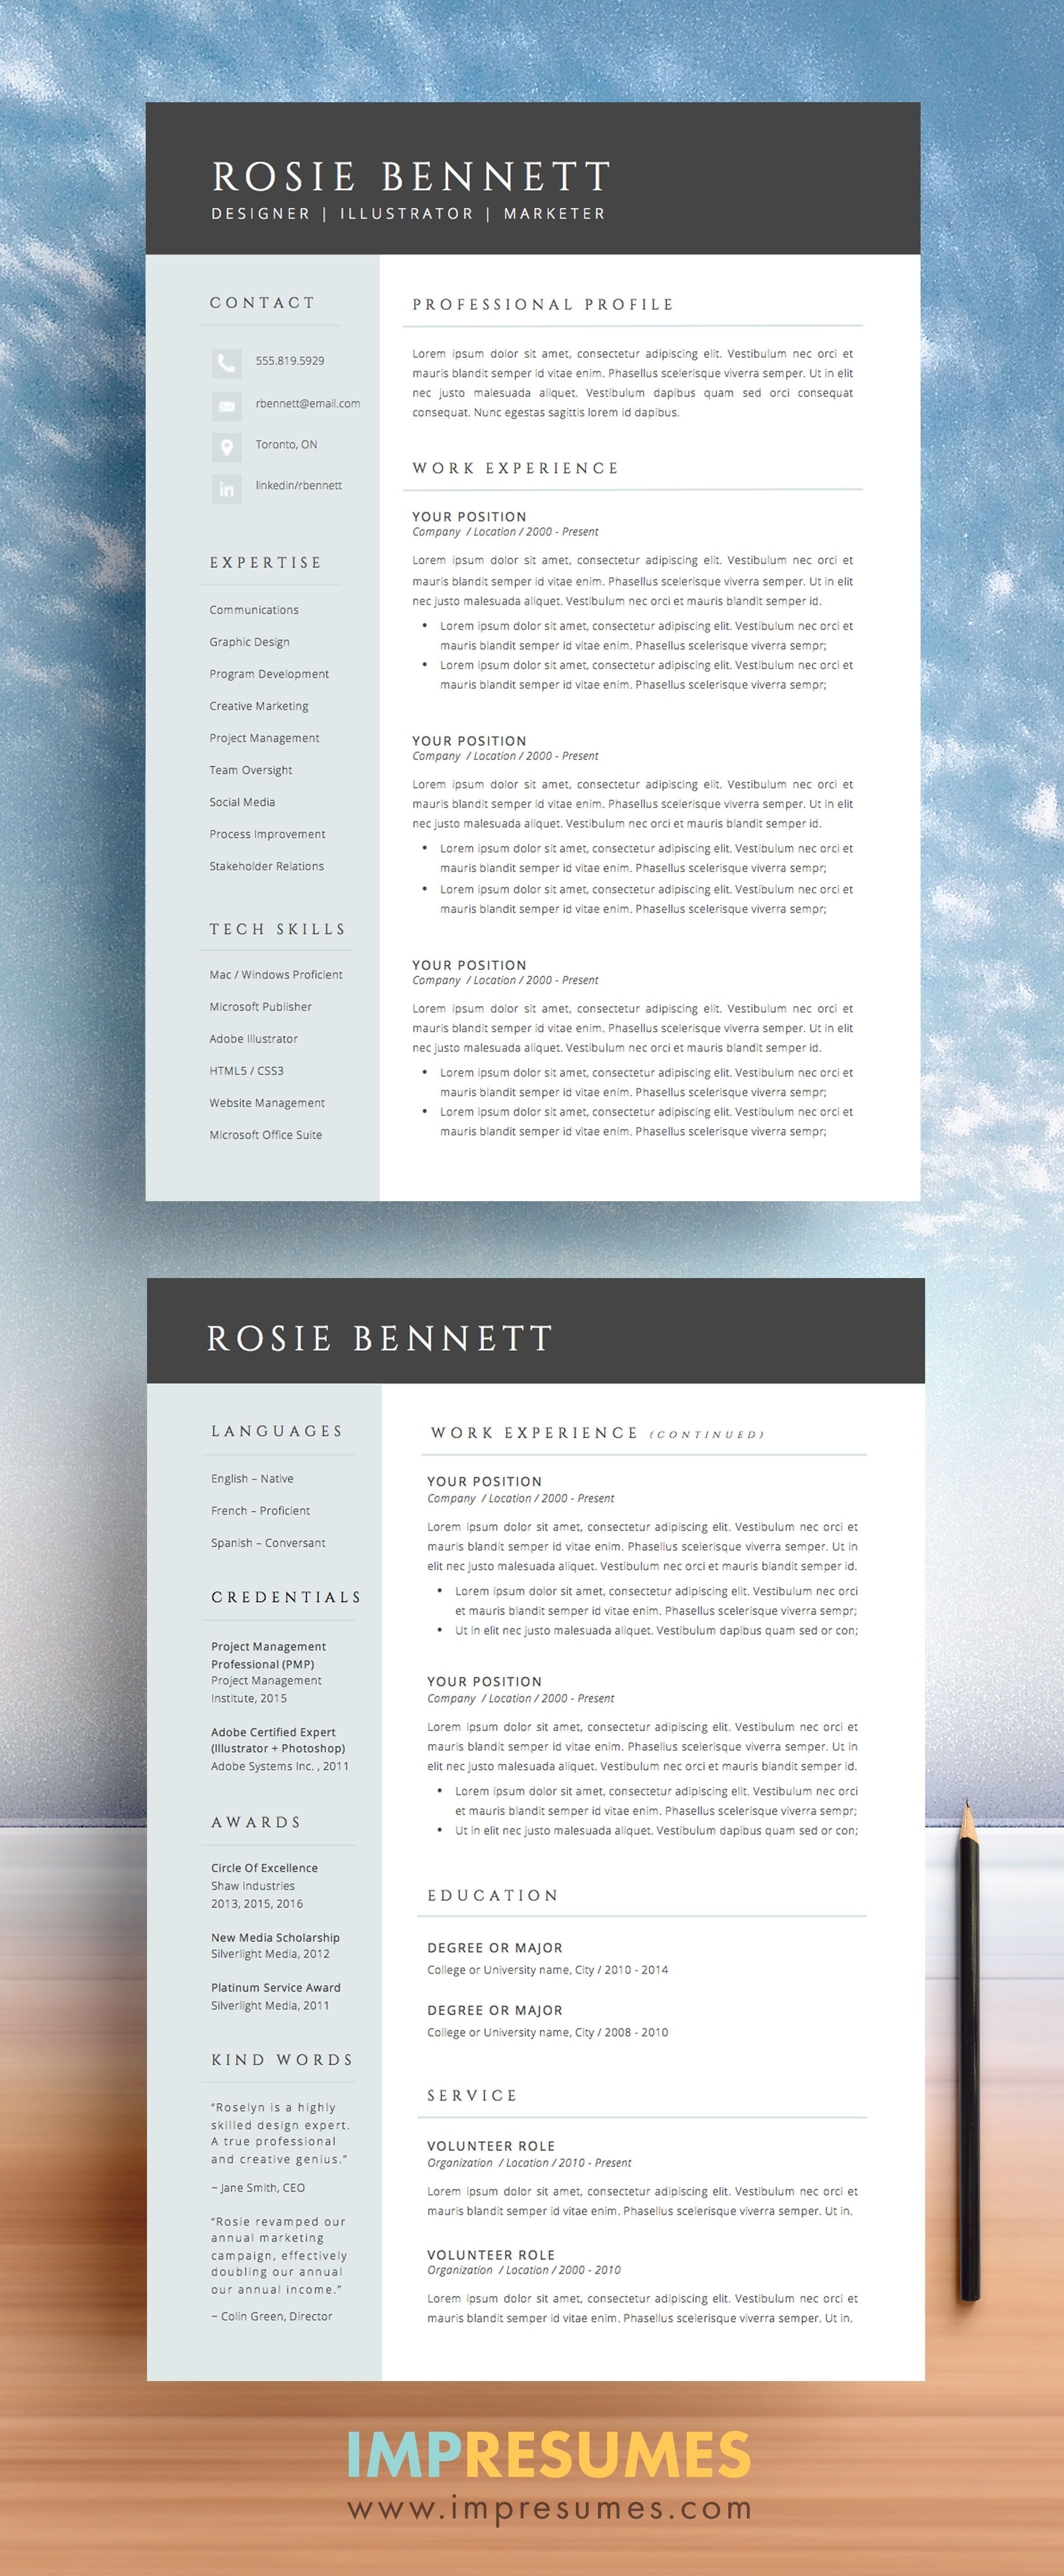 Marketing Campaign Template Word Professional 2Page Resume Template And Cover Letter Package For .